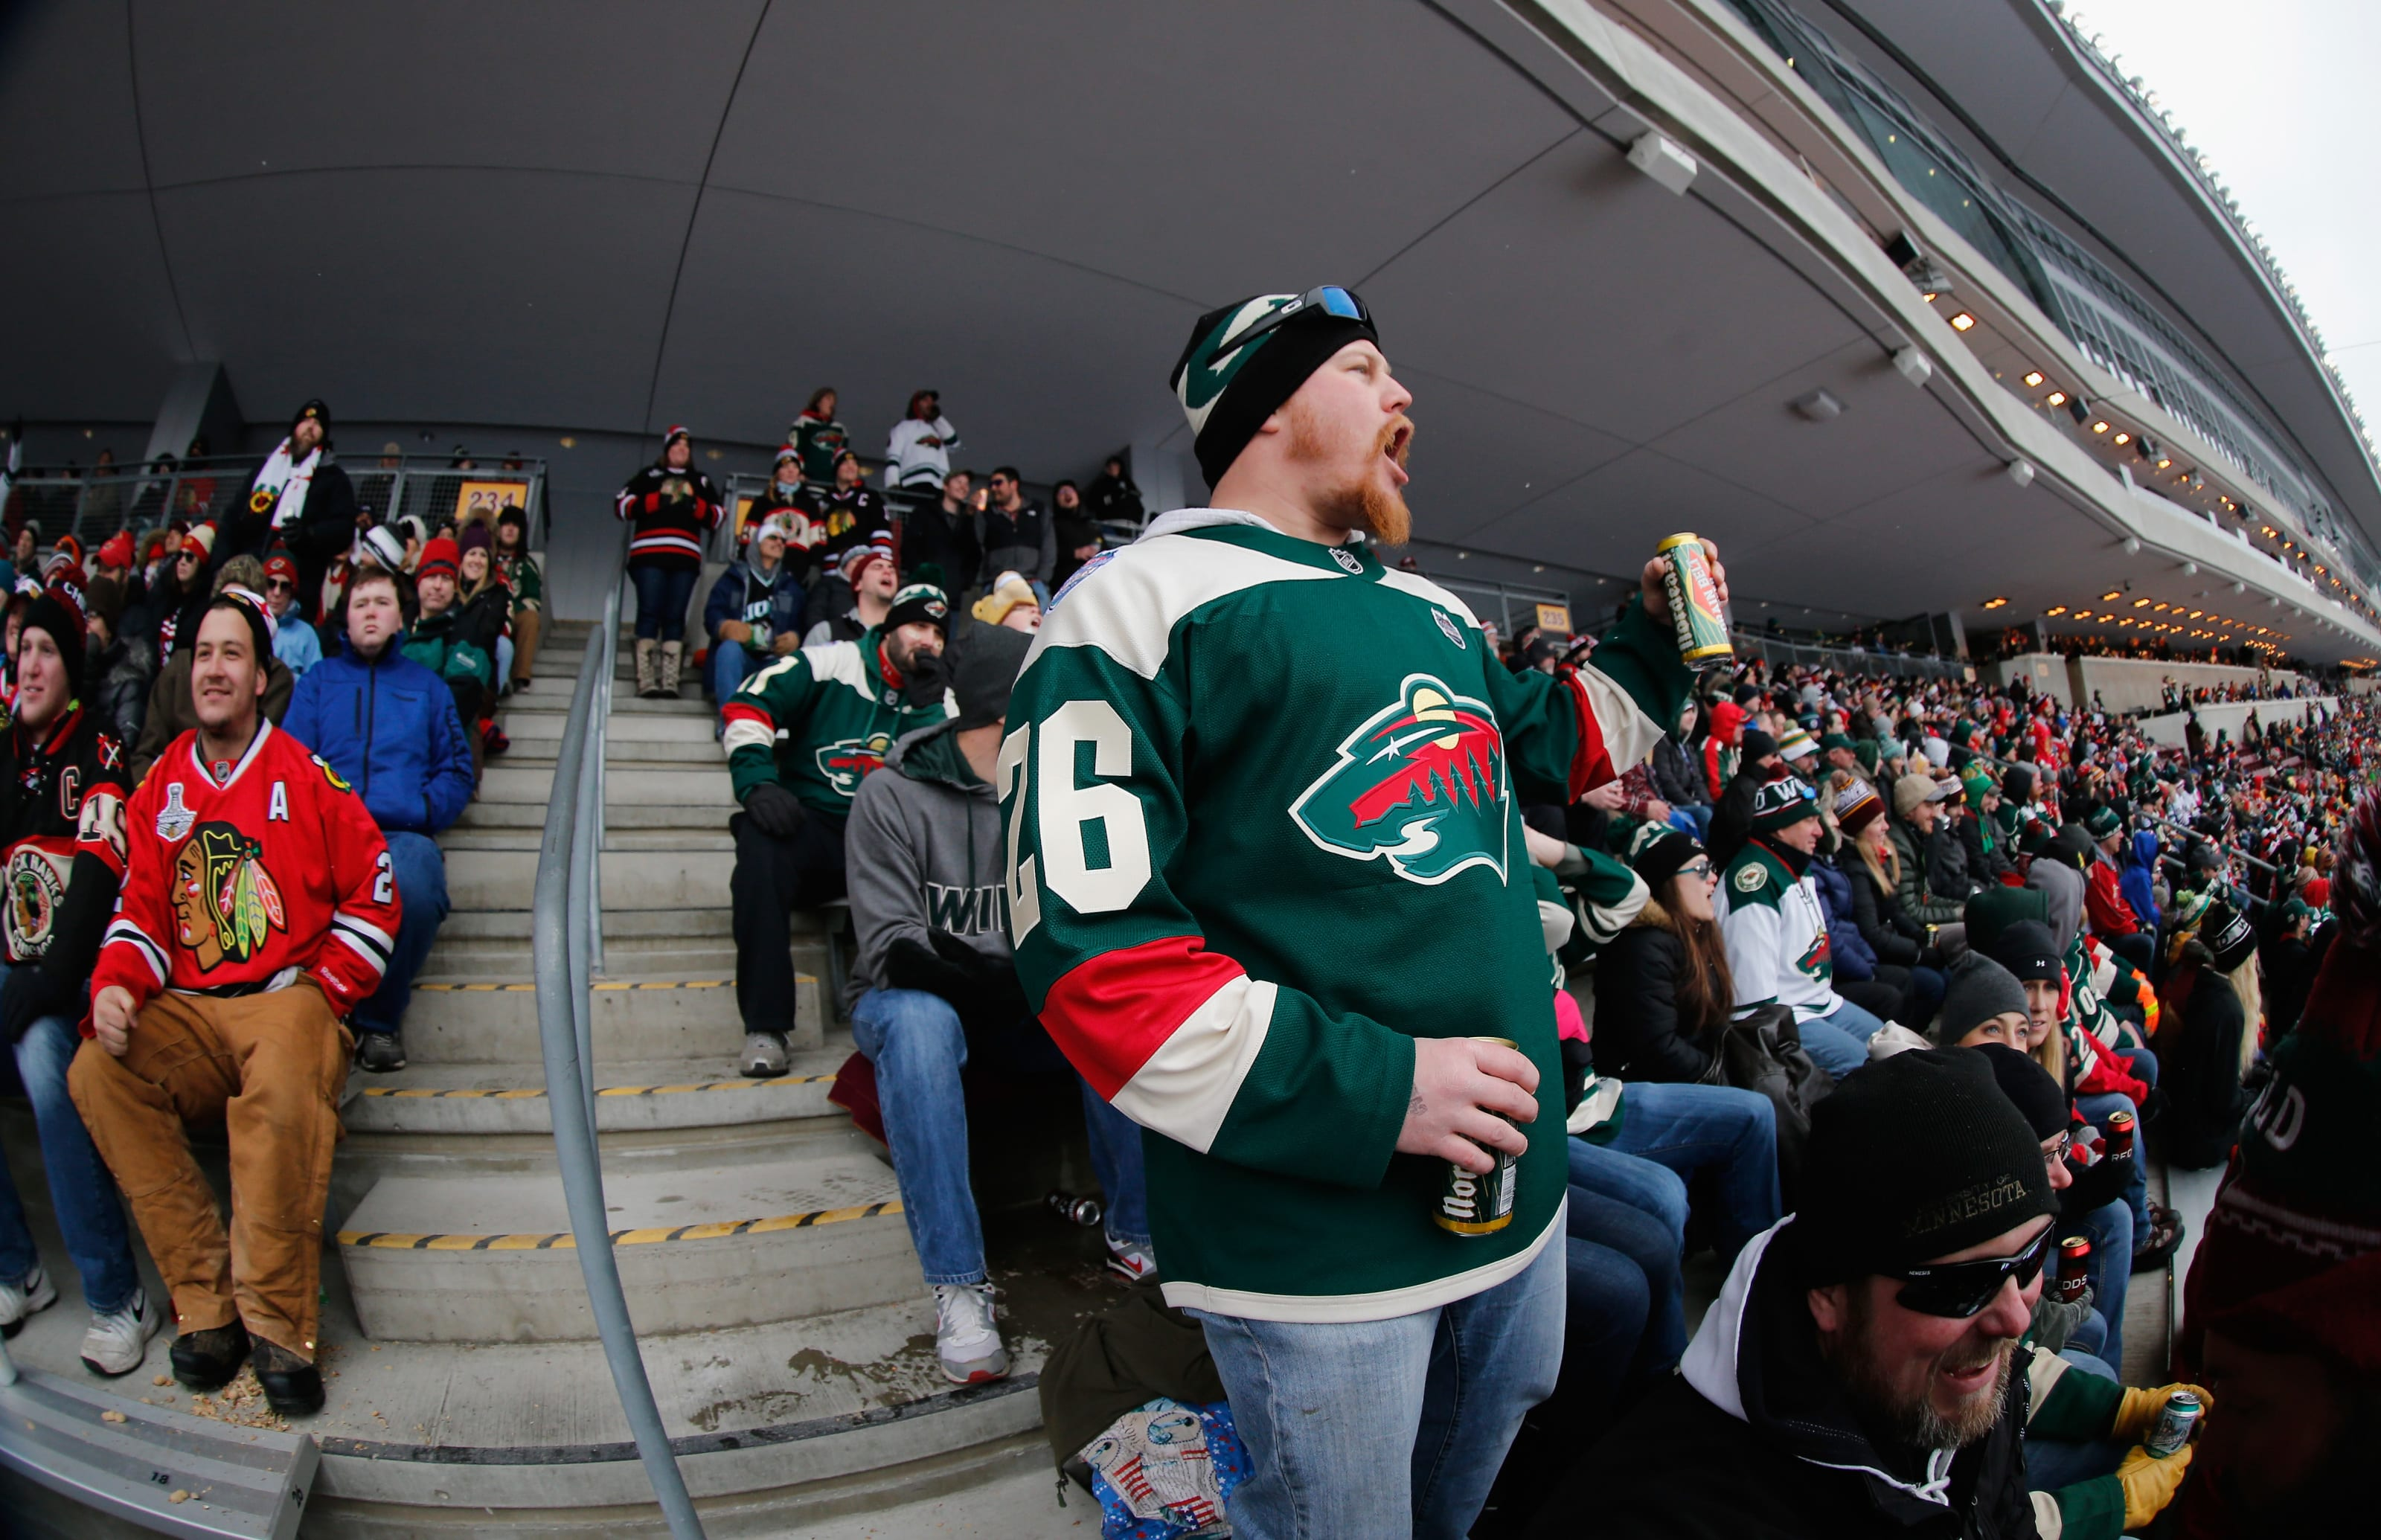 MINNEAPOLIS, MN - FEBRUARY 21: A Minnesota Wild fan yells while attending the 2016 Coors Light Stadium Series game between the Chicago Blackhawks and the Minnesota Wild at TCF Bank Stadium on February 21, 2016 in Minneapolis, Minnesota. (Photo by Eliot J. Schechter/NHLI via Getty Images)